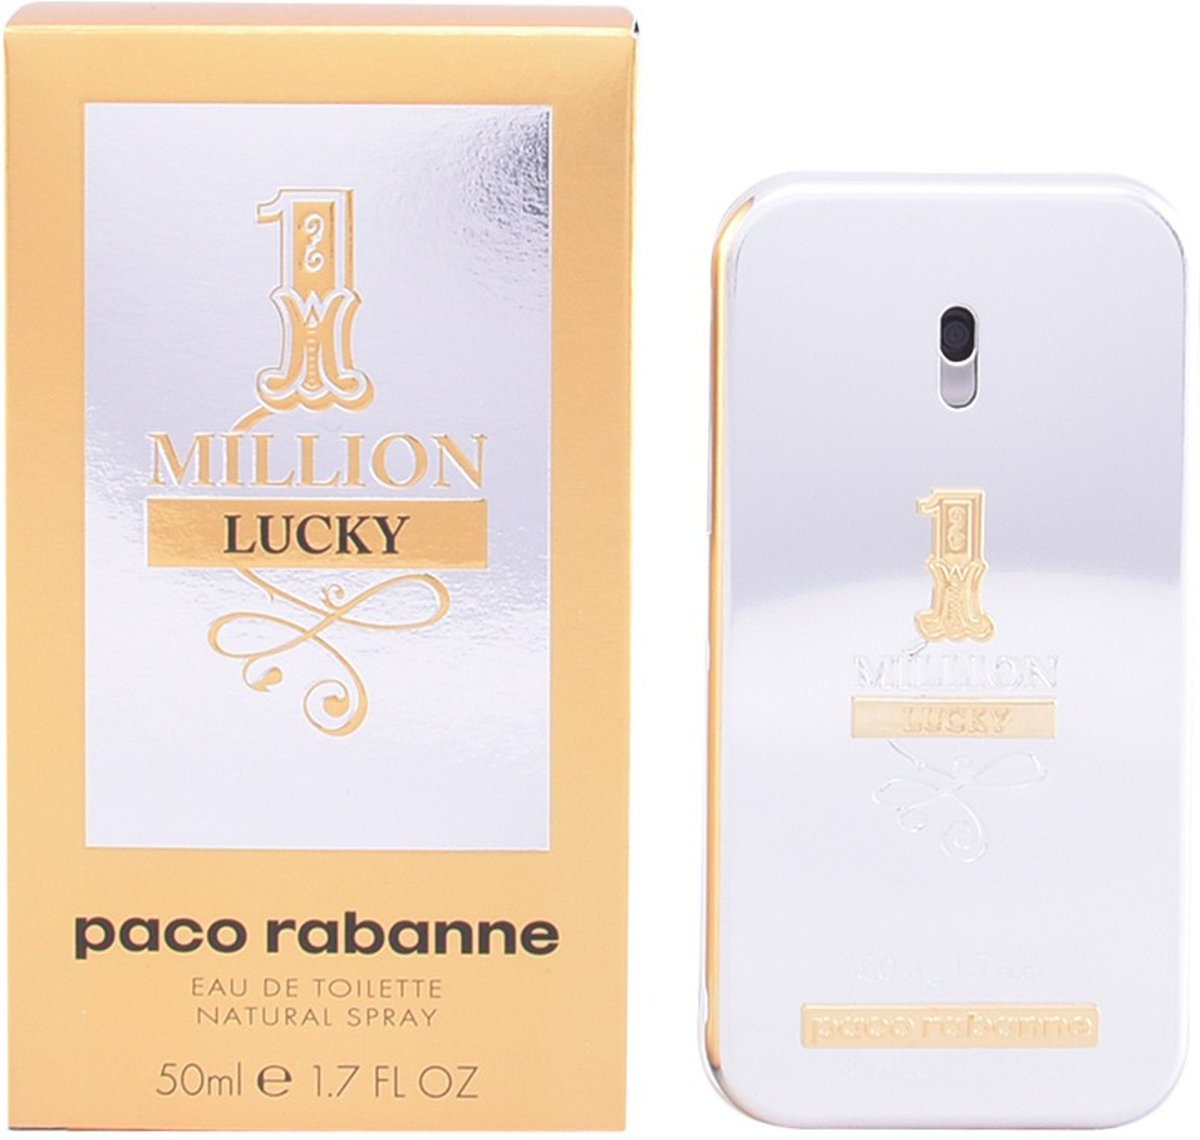 MULTI BUNDEL 2 stuks 1 MILLION LUCKY Eau de Toilette Spray 50 ml